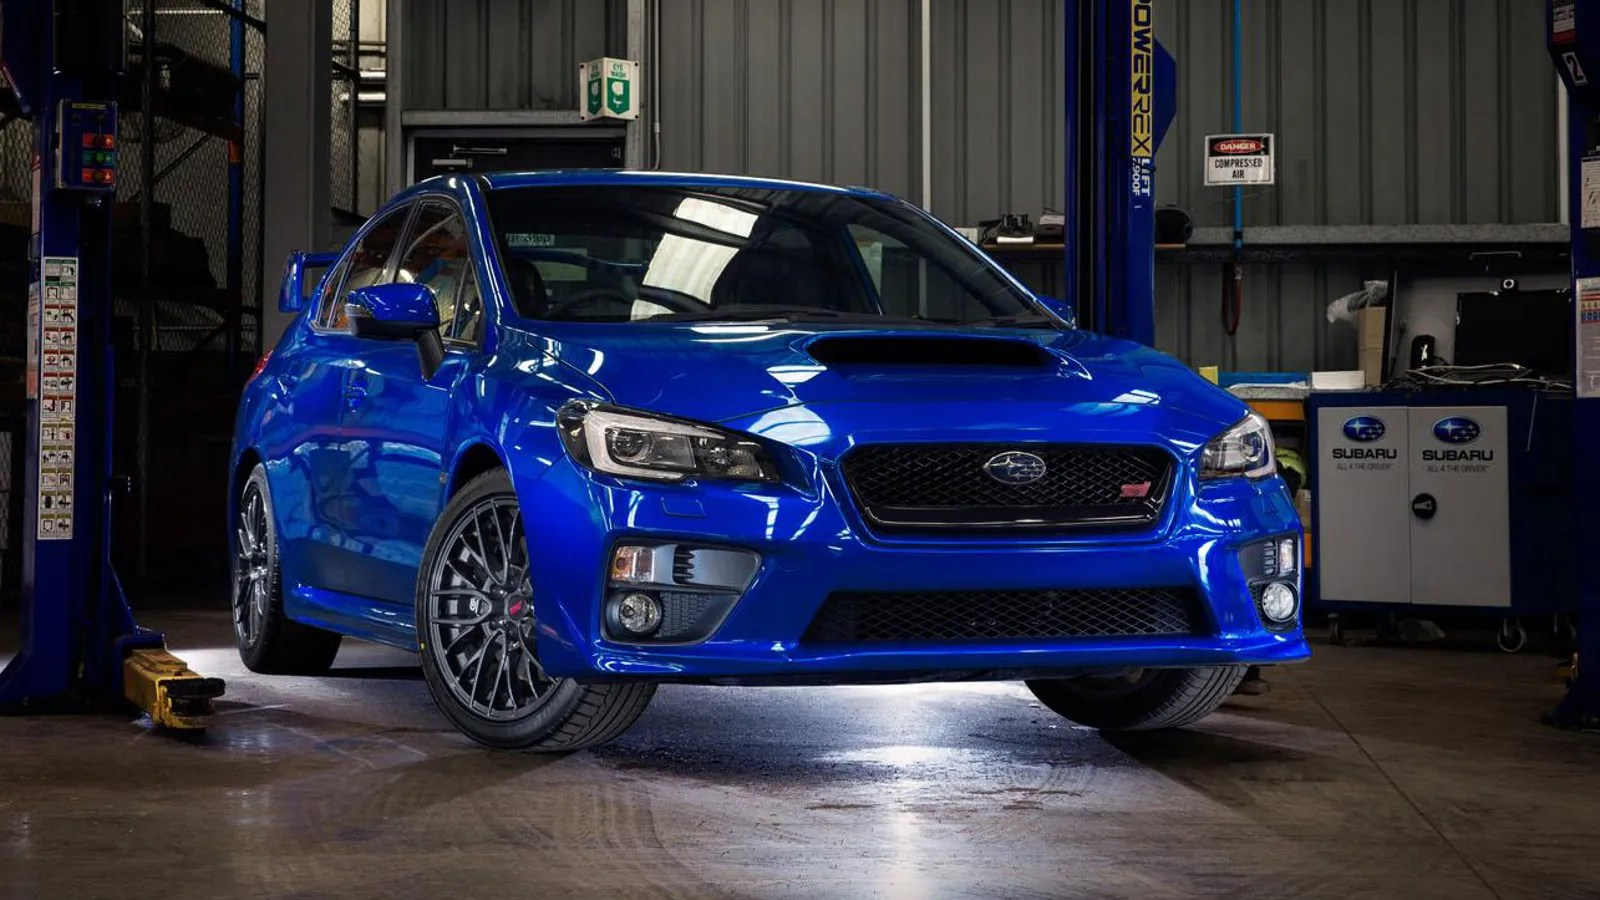 Subaru Impreza Wrx Sti Rally Car Wallpaper Subaru Sells A Wrx Sti Rally Car From The Factory